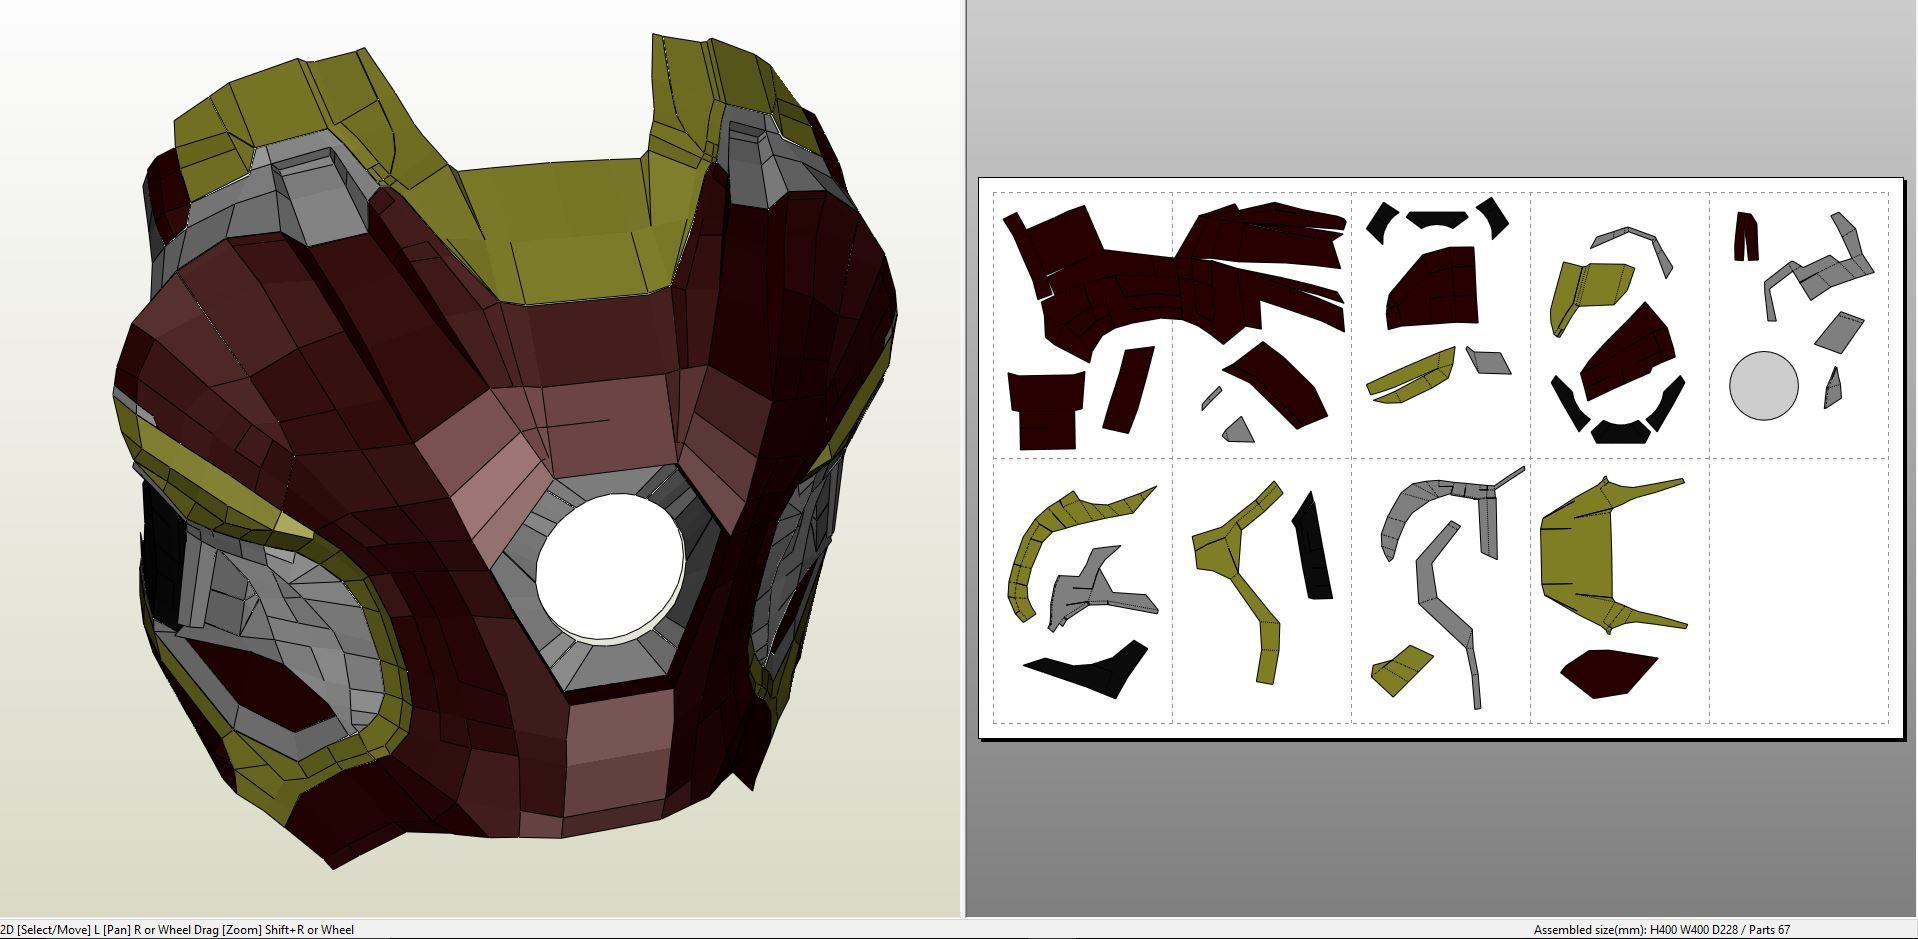 Papercraft pdo file template for iron man mark 45 full armor papercraft pdo file template for iron man mark 45 full armor foam pronofoot35fo Image collections